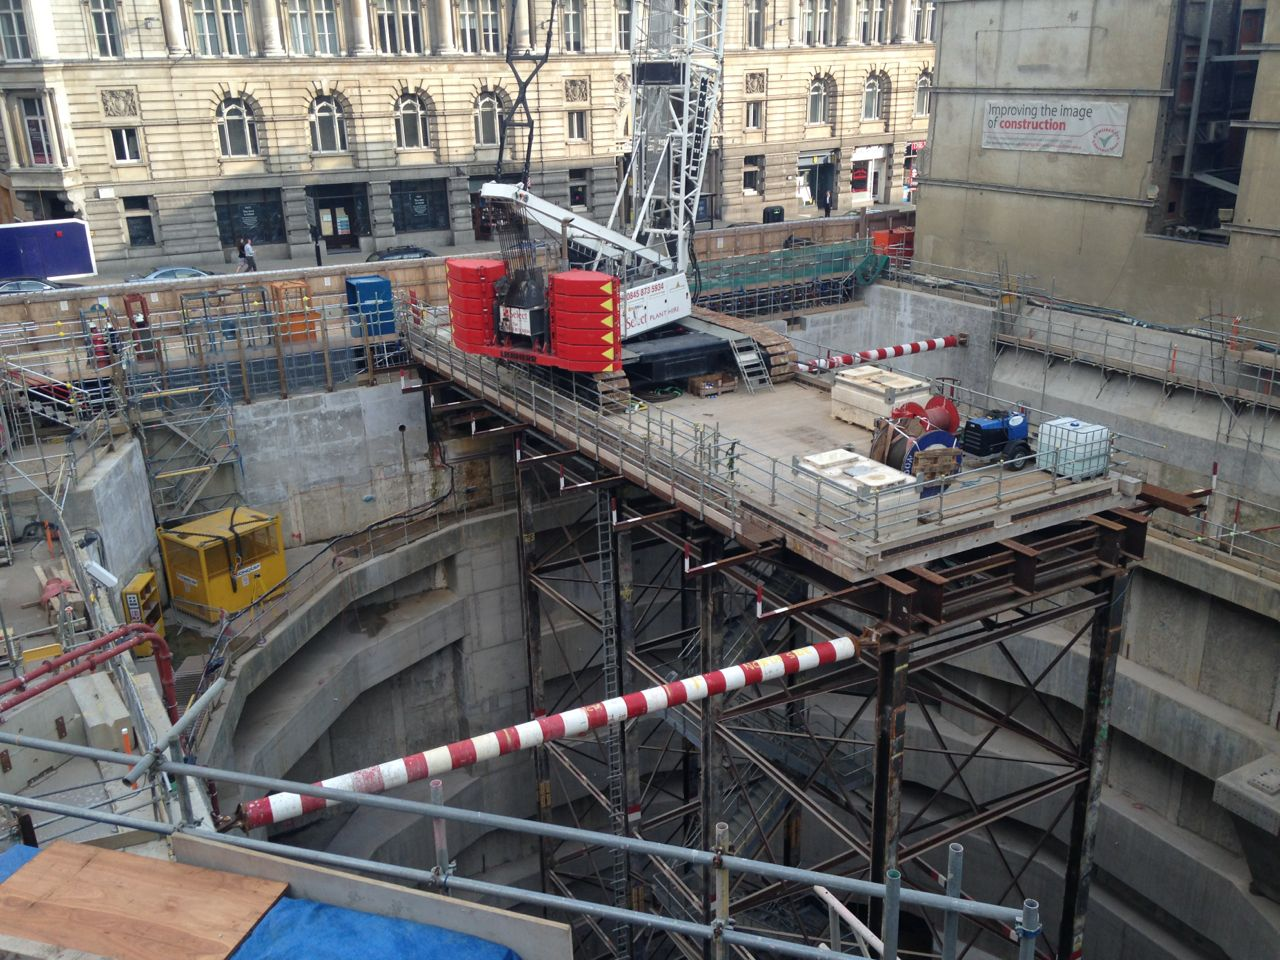 A concrete lined hole in the ground with a crane suspended above on steel scaffolding